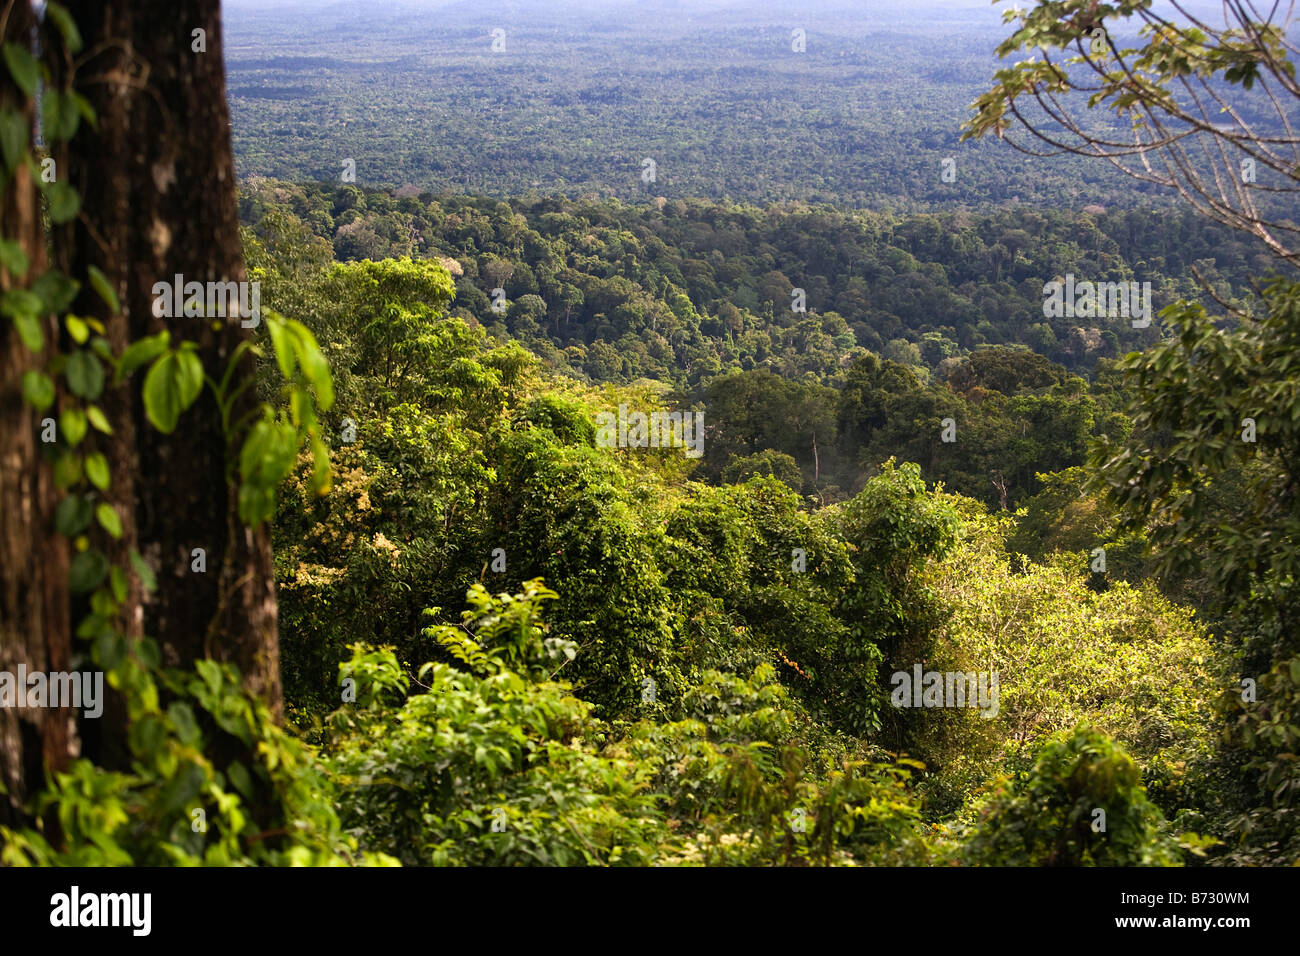 Suriname, Brownsweg, Brownsberg National Park. View on forest and Brokopondo lake. - Stock Image